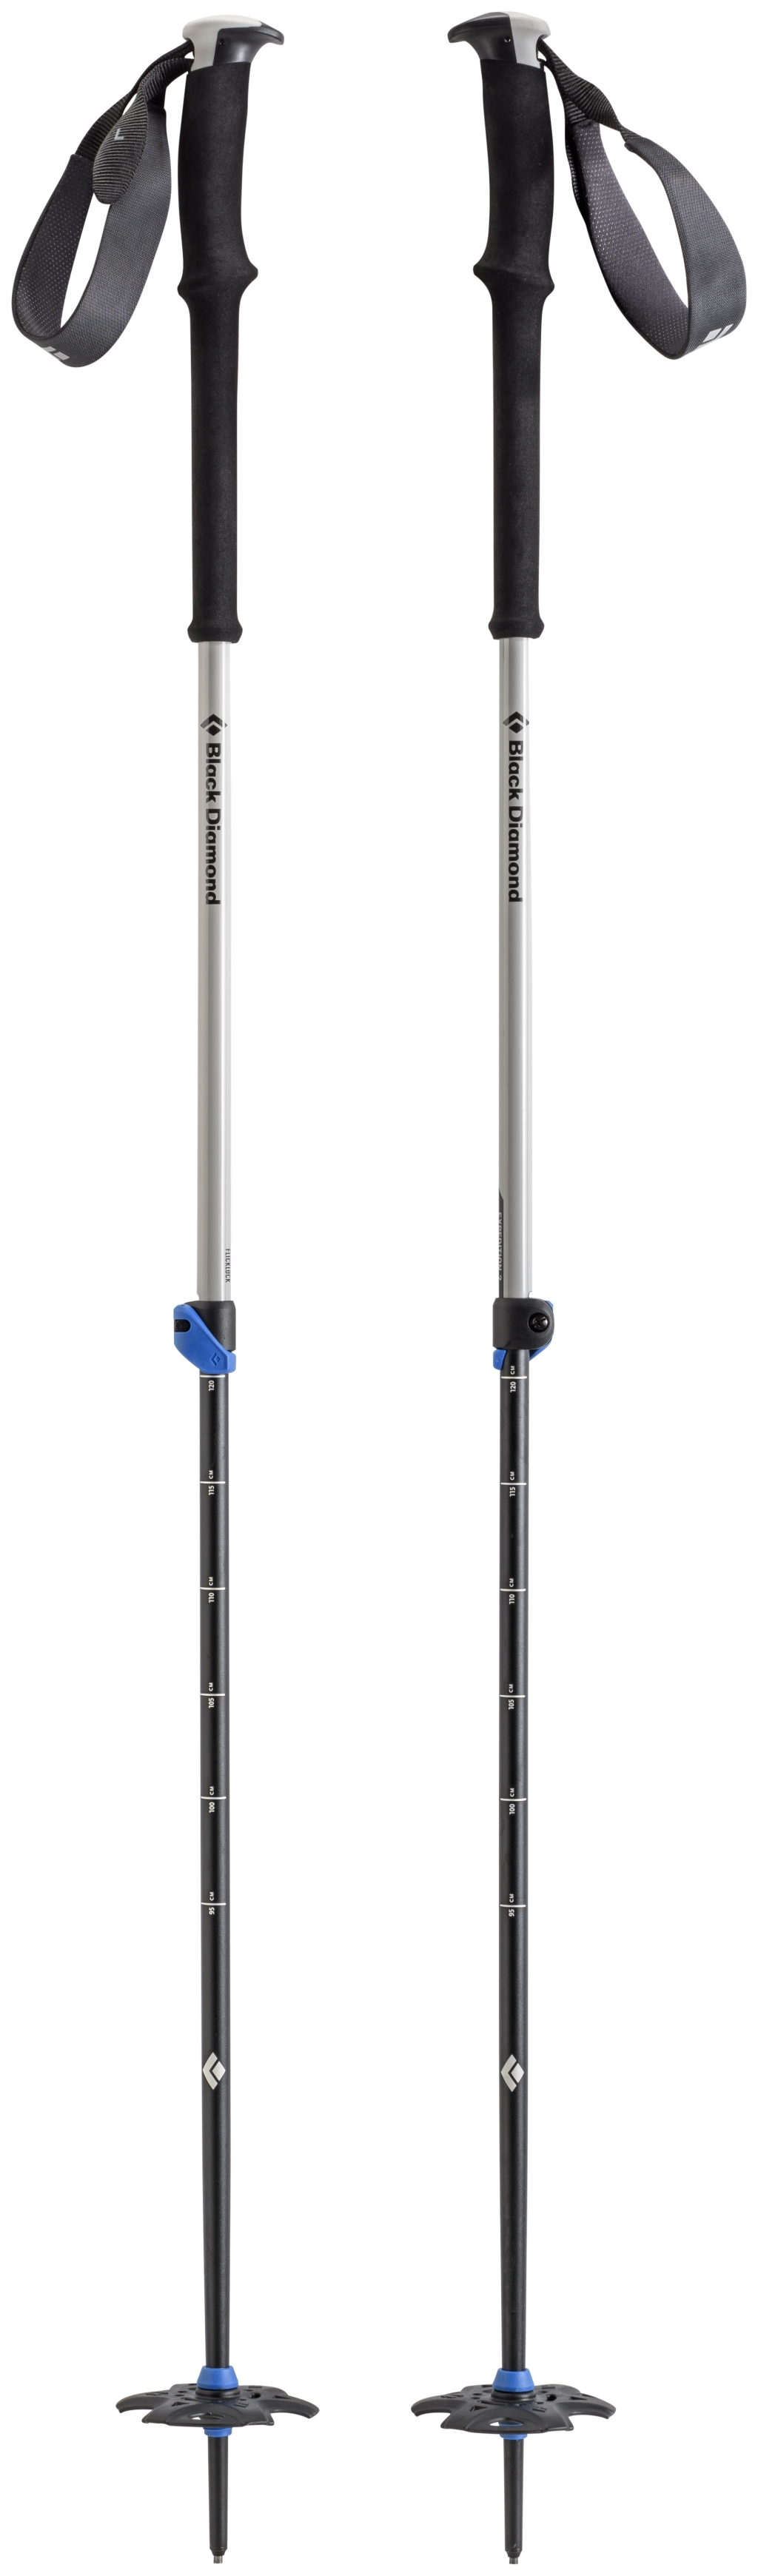 Black Diamond Expedition 2 Ski Poles No Color-30